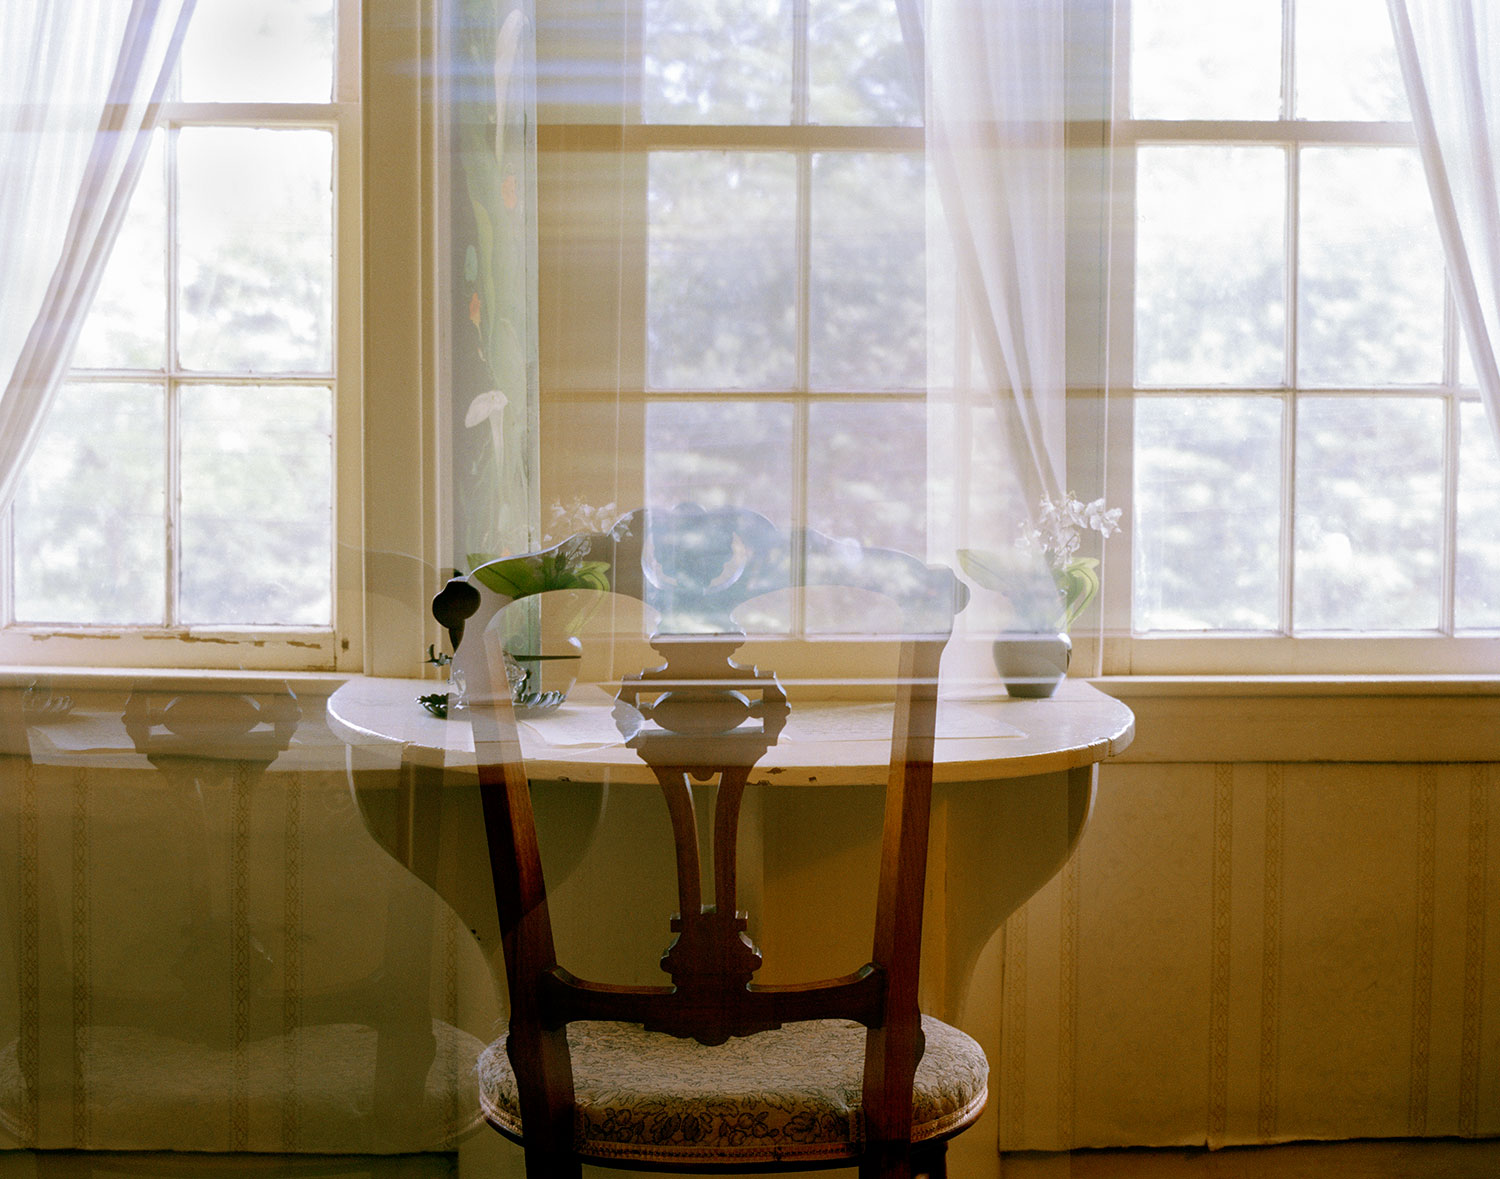 Lisa McCarty, Louisa May Alcott's Desk, Orchard House, 2015. Image courtesy of the artist.